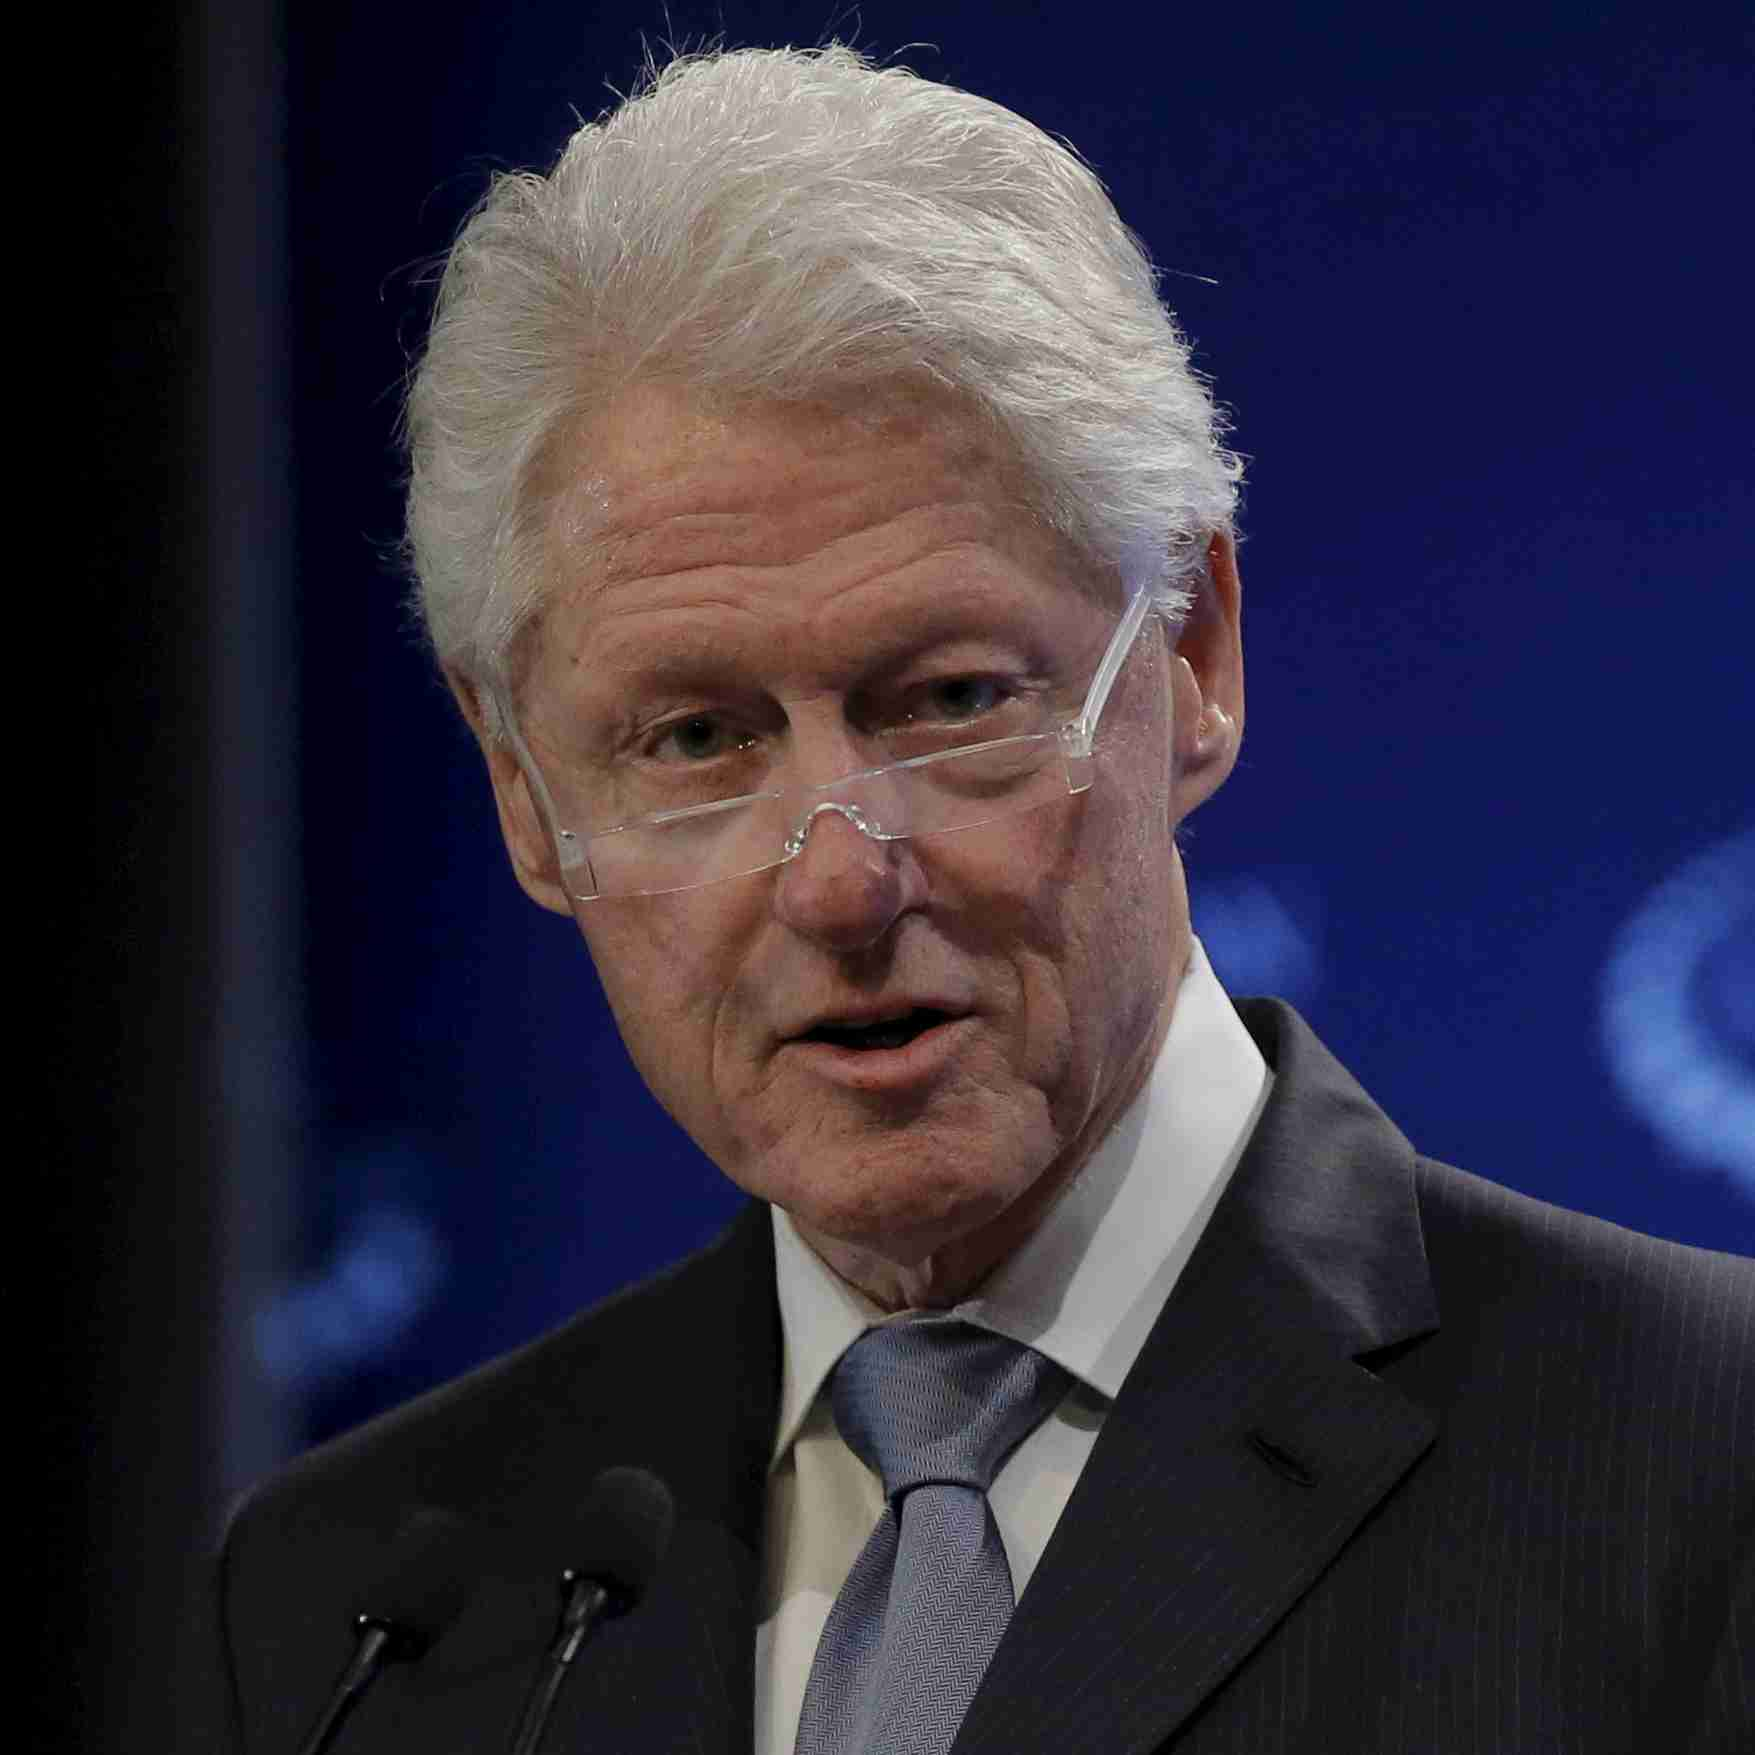 Former U.S. President Bill Clinton speaks during the Clinton Global Initiative's winter meeting in New York, February 4, 2016. REUTERS/Brendan McDermid - RTX25HBP